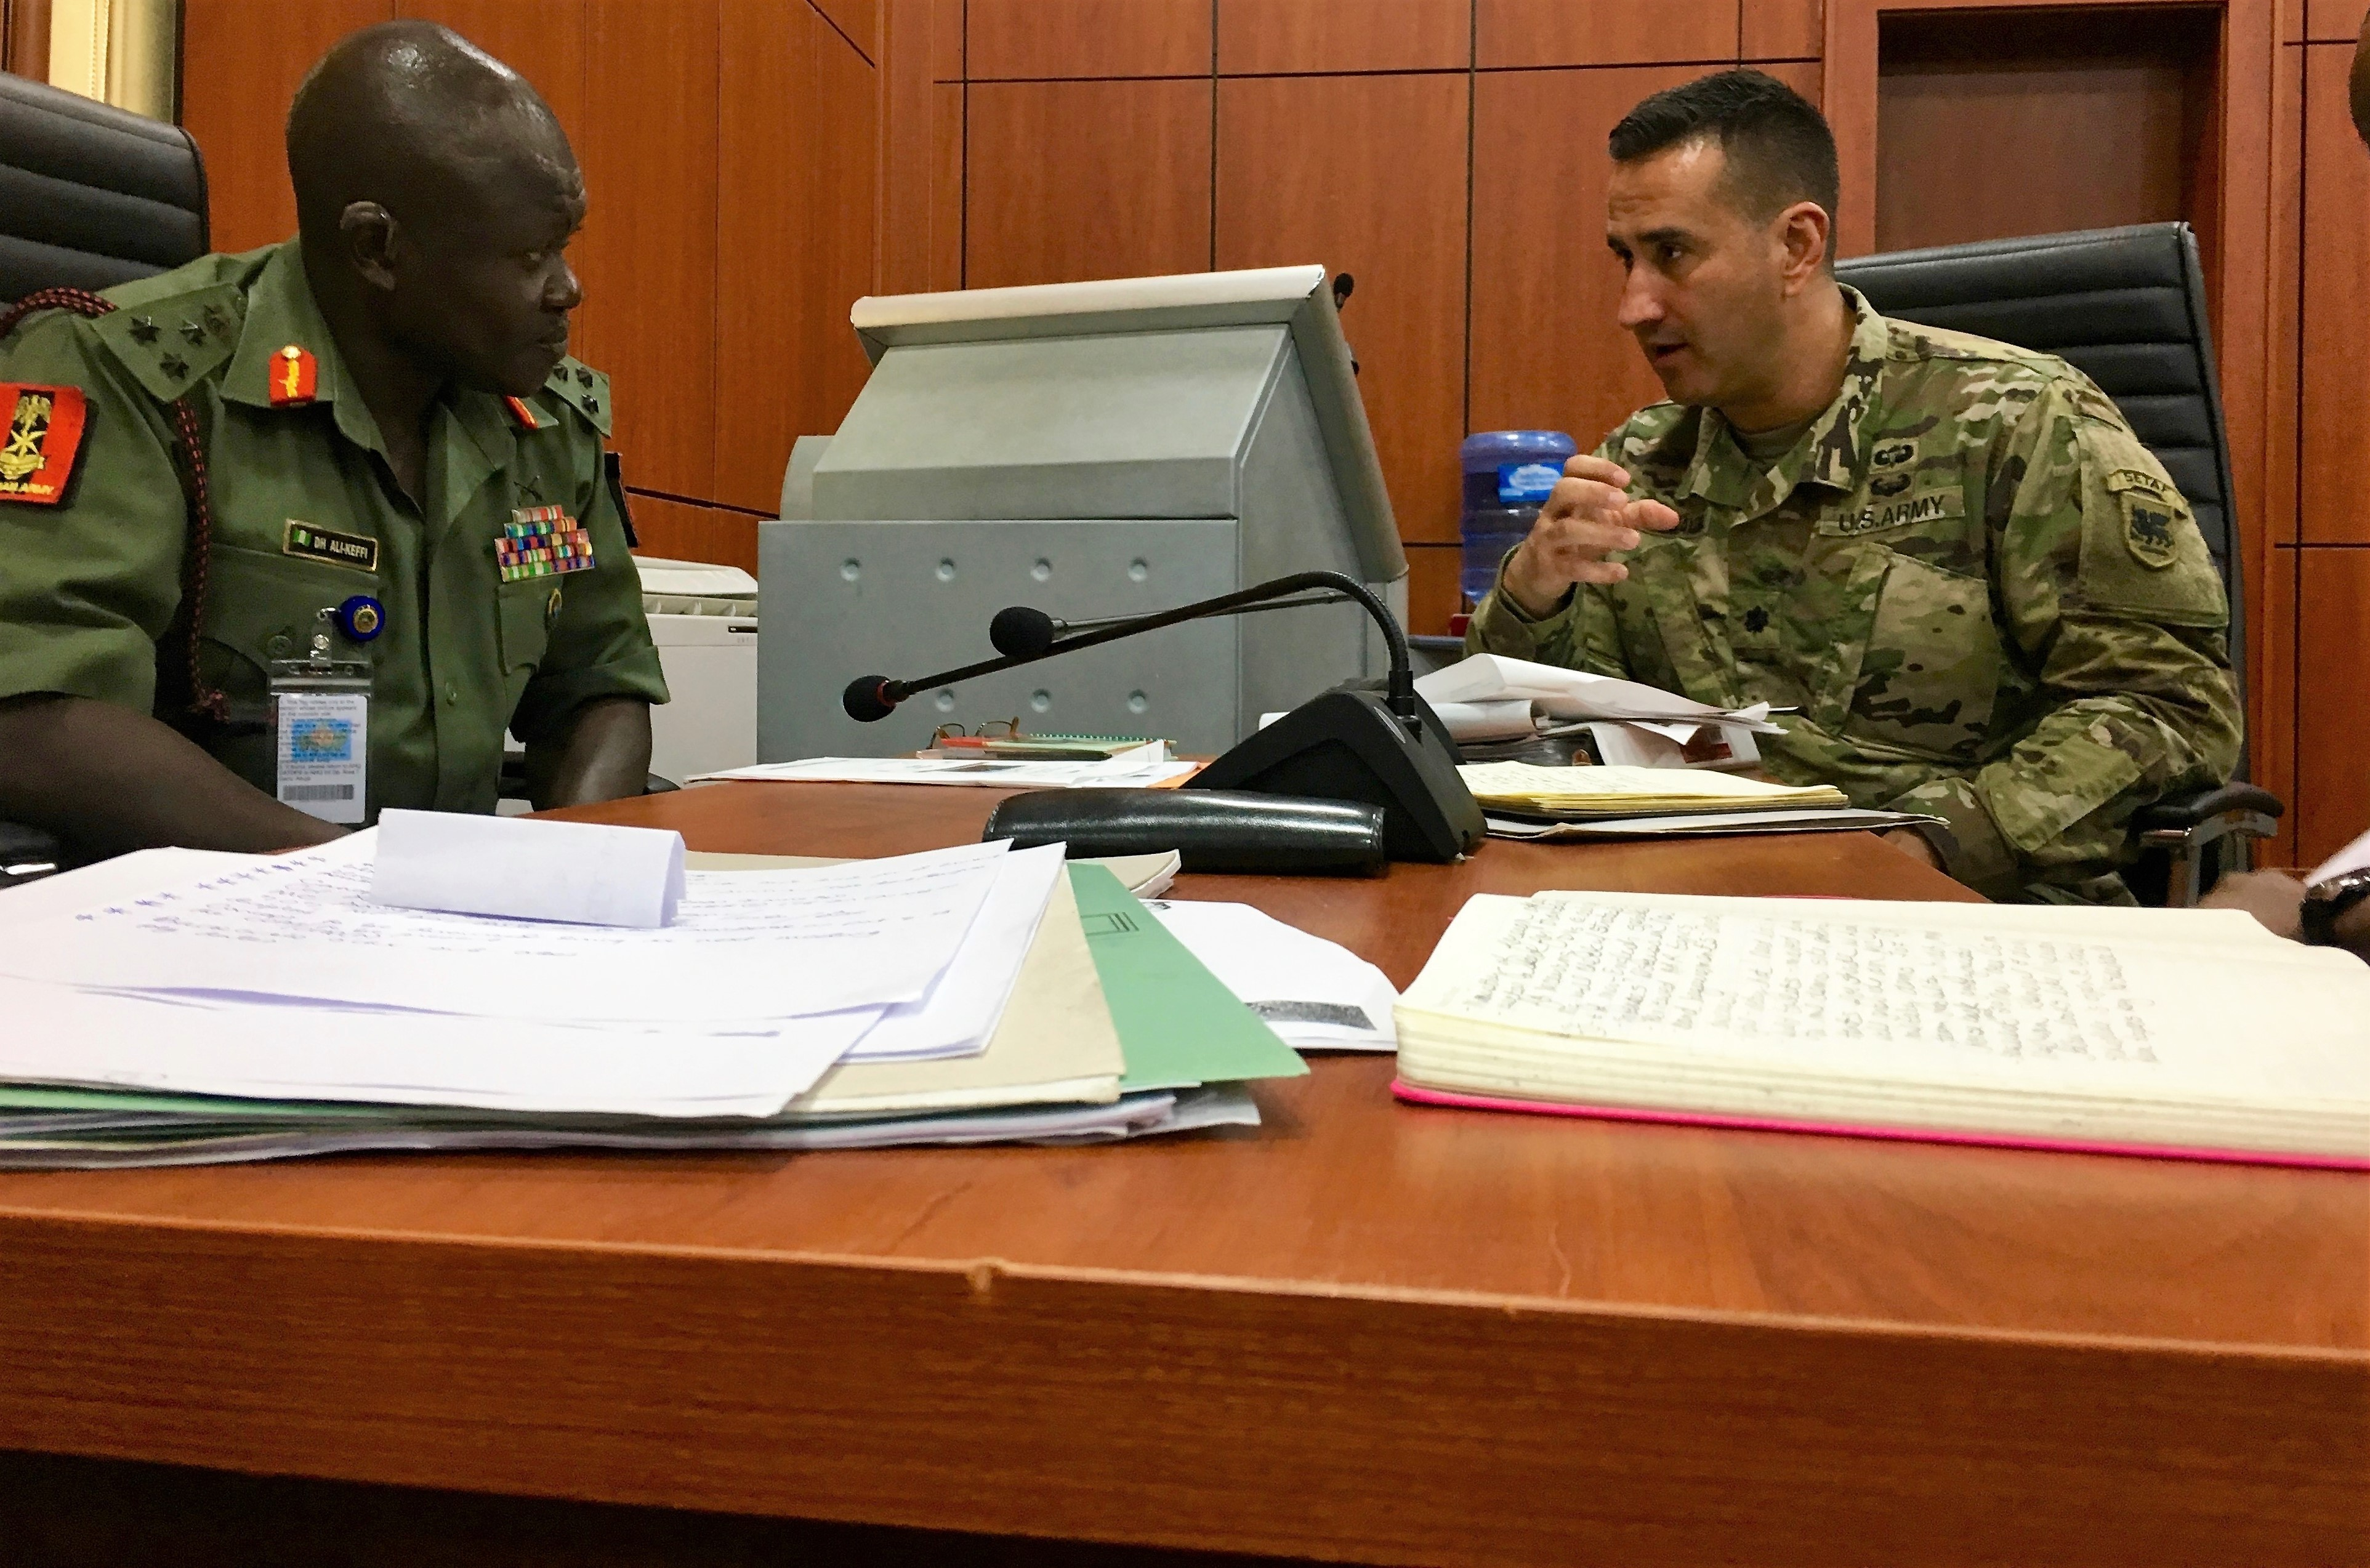 Armed Forces Nigeria and U.S. Army Africa's African Land Forces Summit planning team work together on plans and preparations for next years African Land Forces Summit.  ALFS is a weeklong seminar designed to give African land force's chiefs an opportunity to discuss and develop solutions for improving security and stability in their home country. (Photo by Capt. James Sheehan)